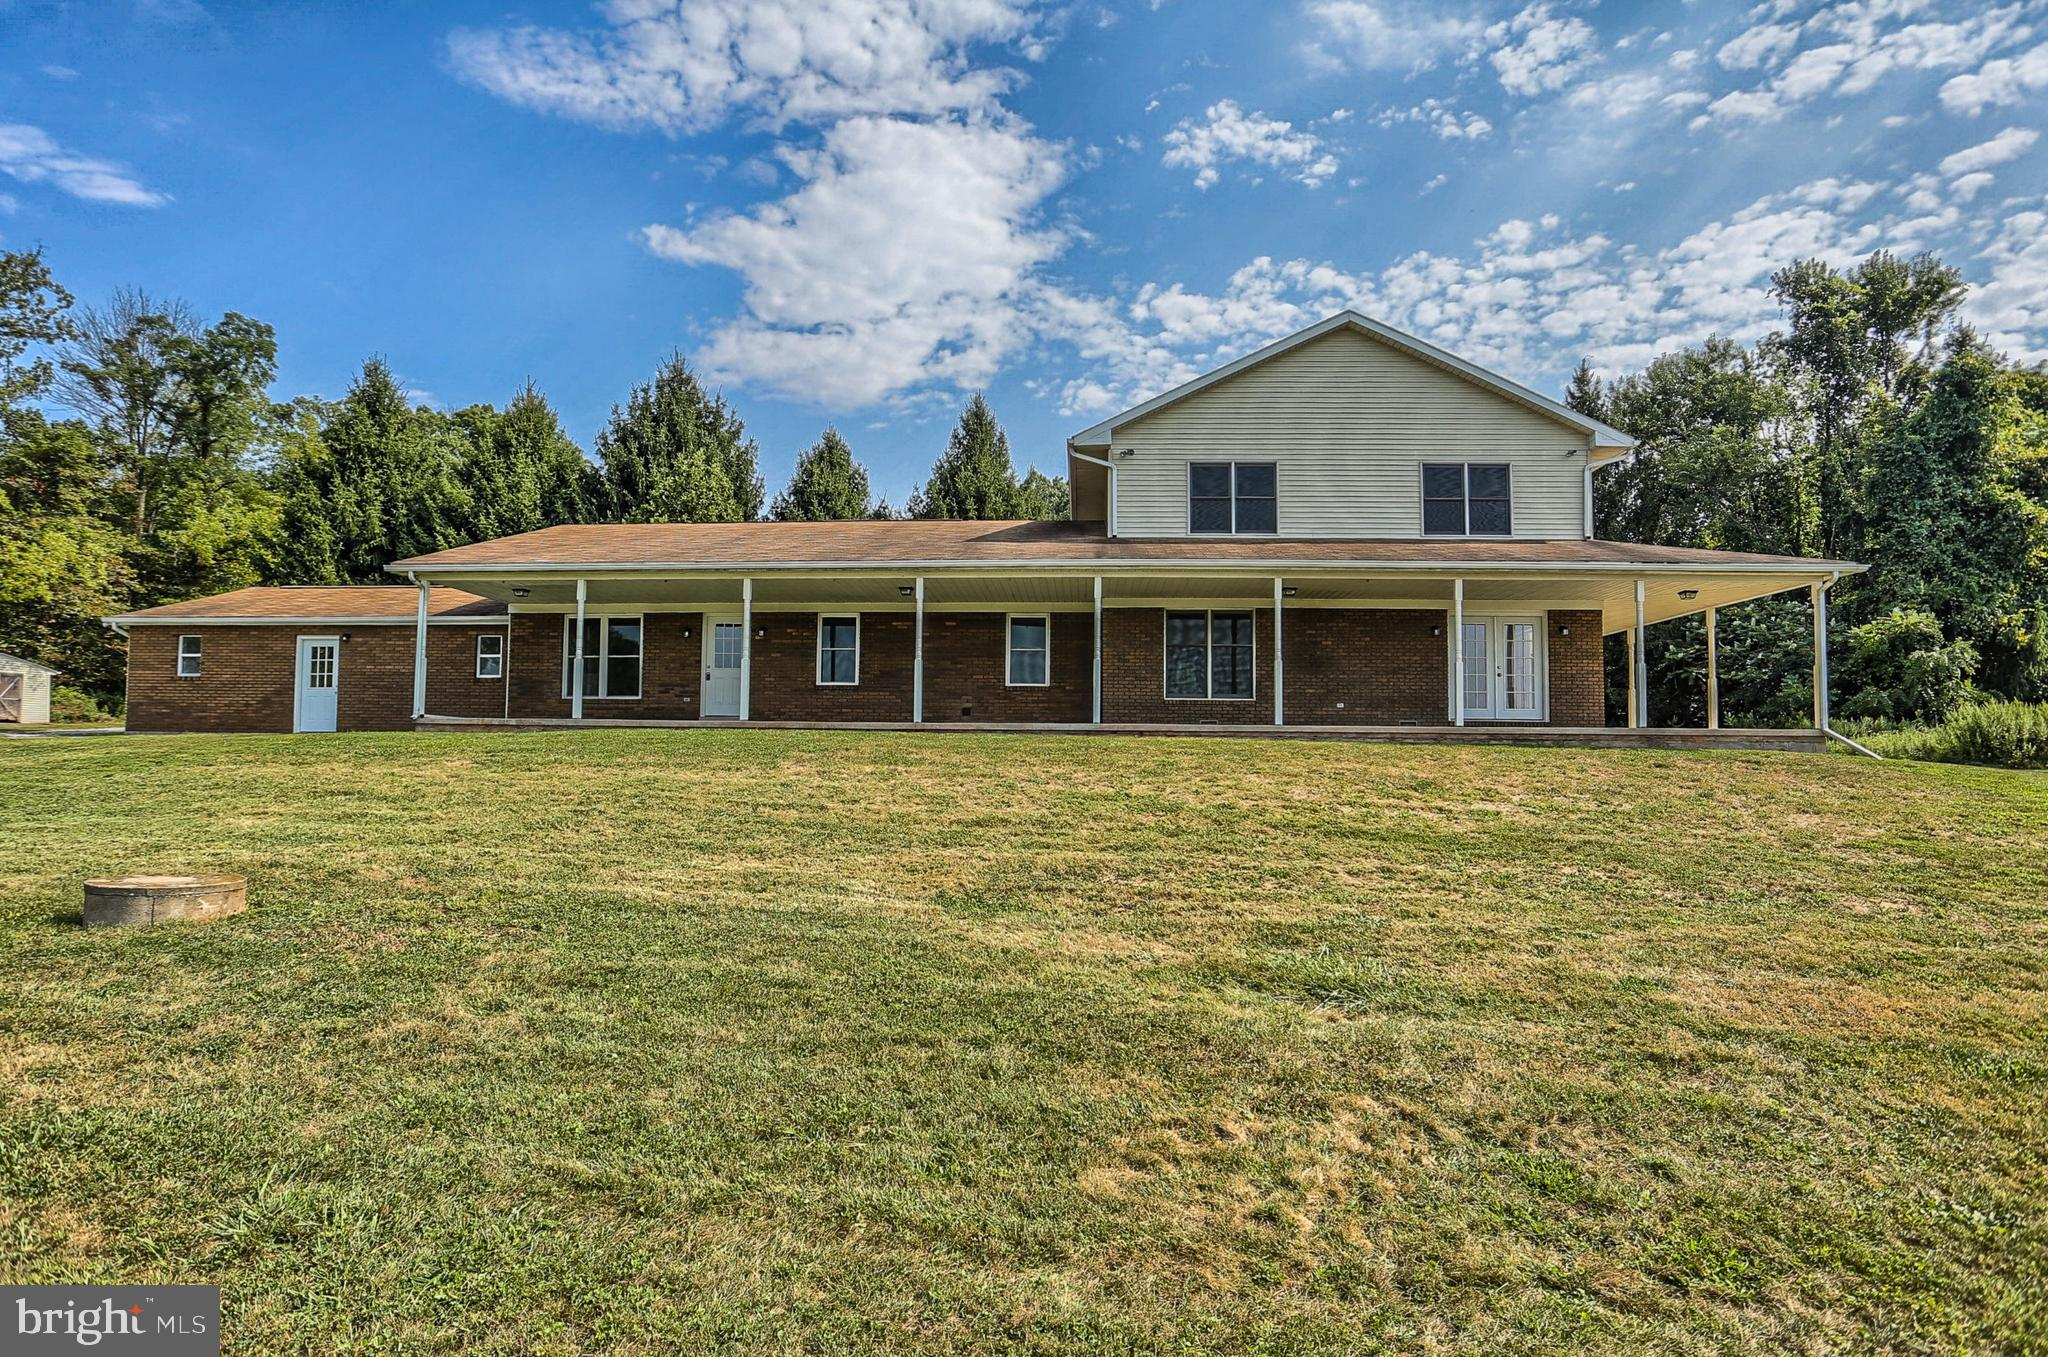 429 OLD STAGE ROAD, LEWISBERRY, PA 17339